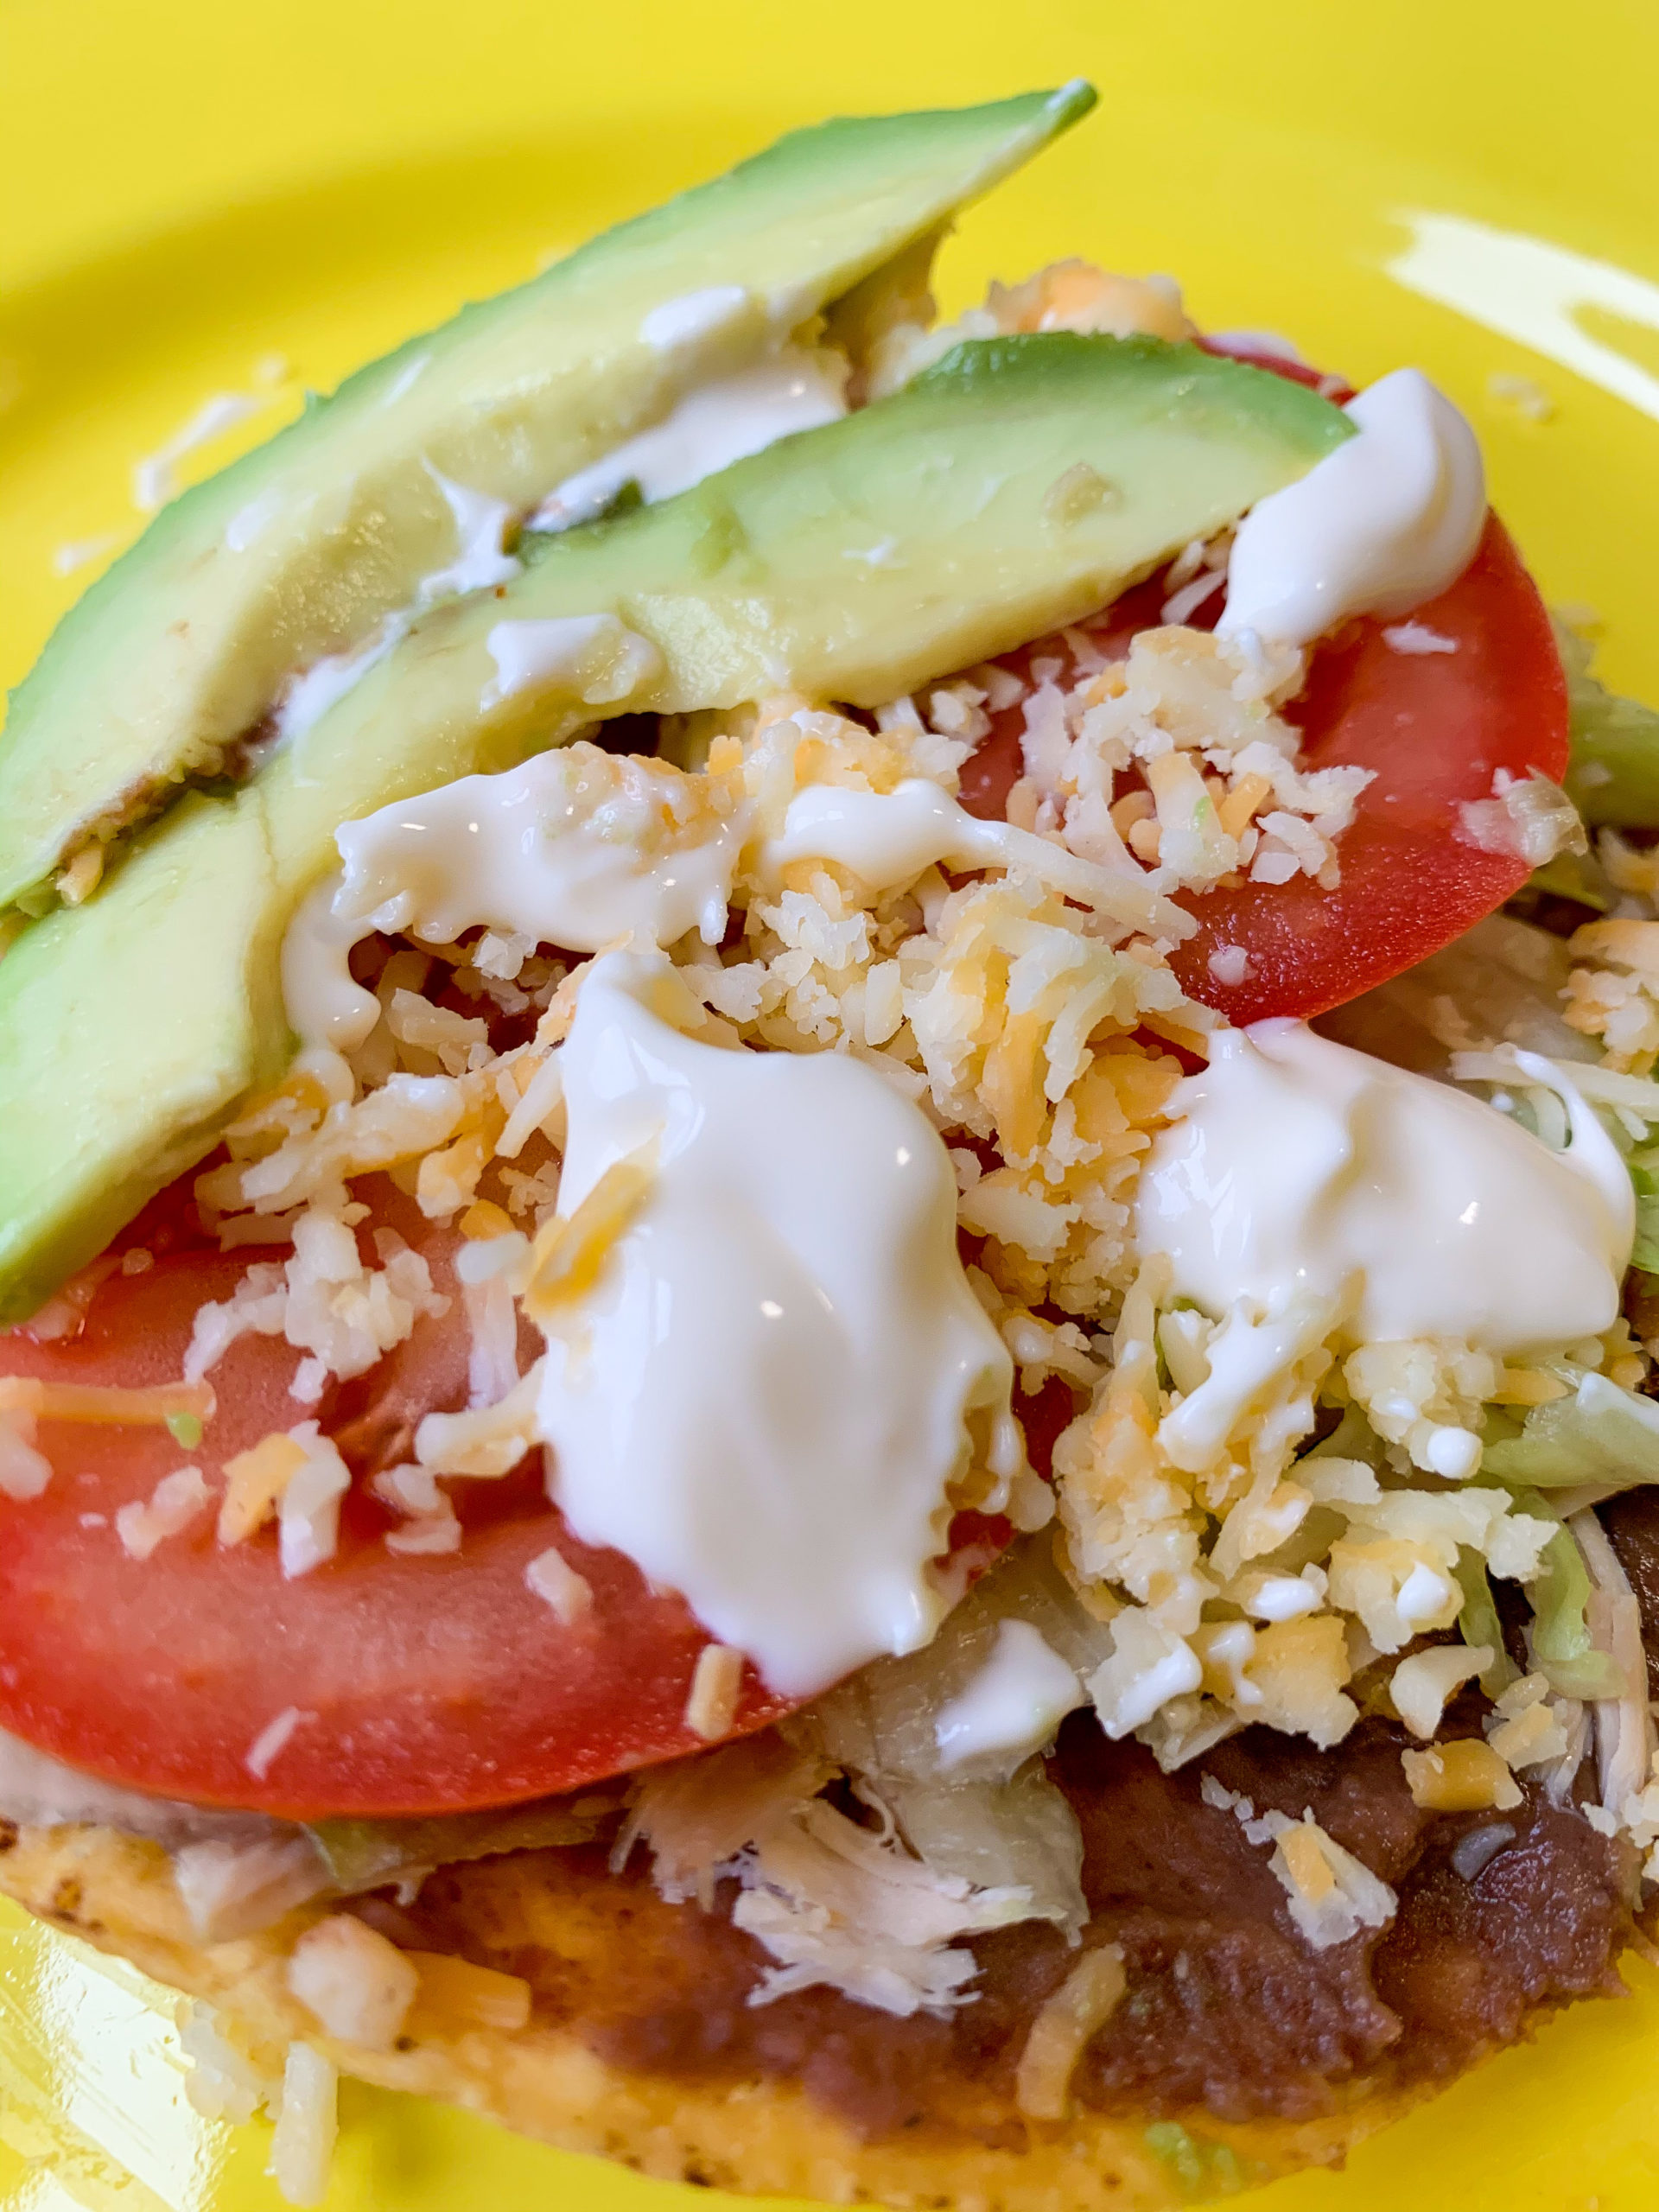 Making Tostadas – A Quick Mexican Dish